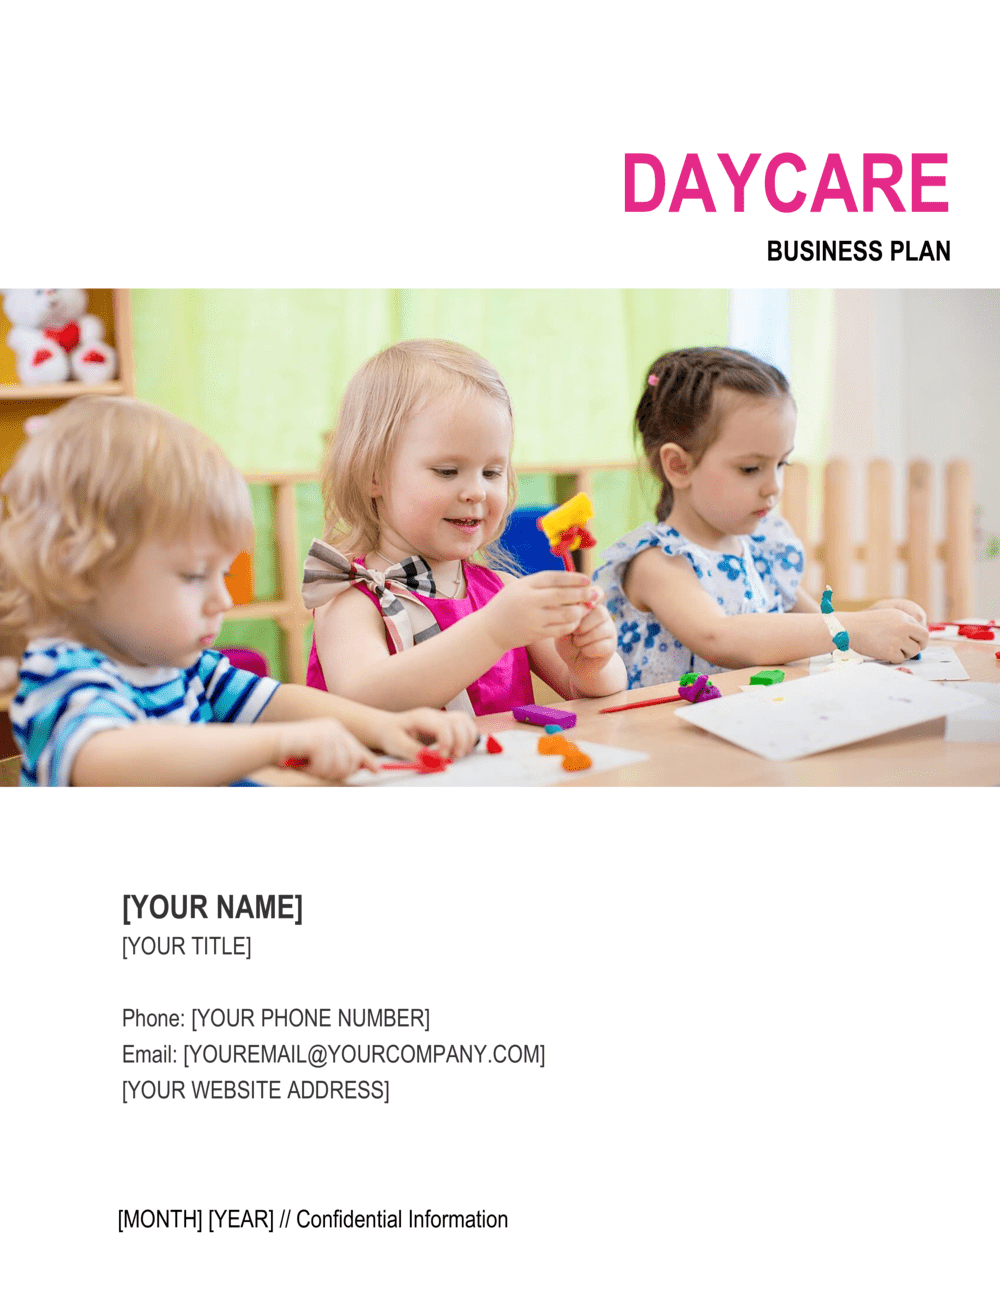 Business-in-a-Box's Daycare Business Plan Template